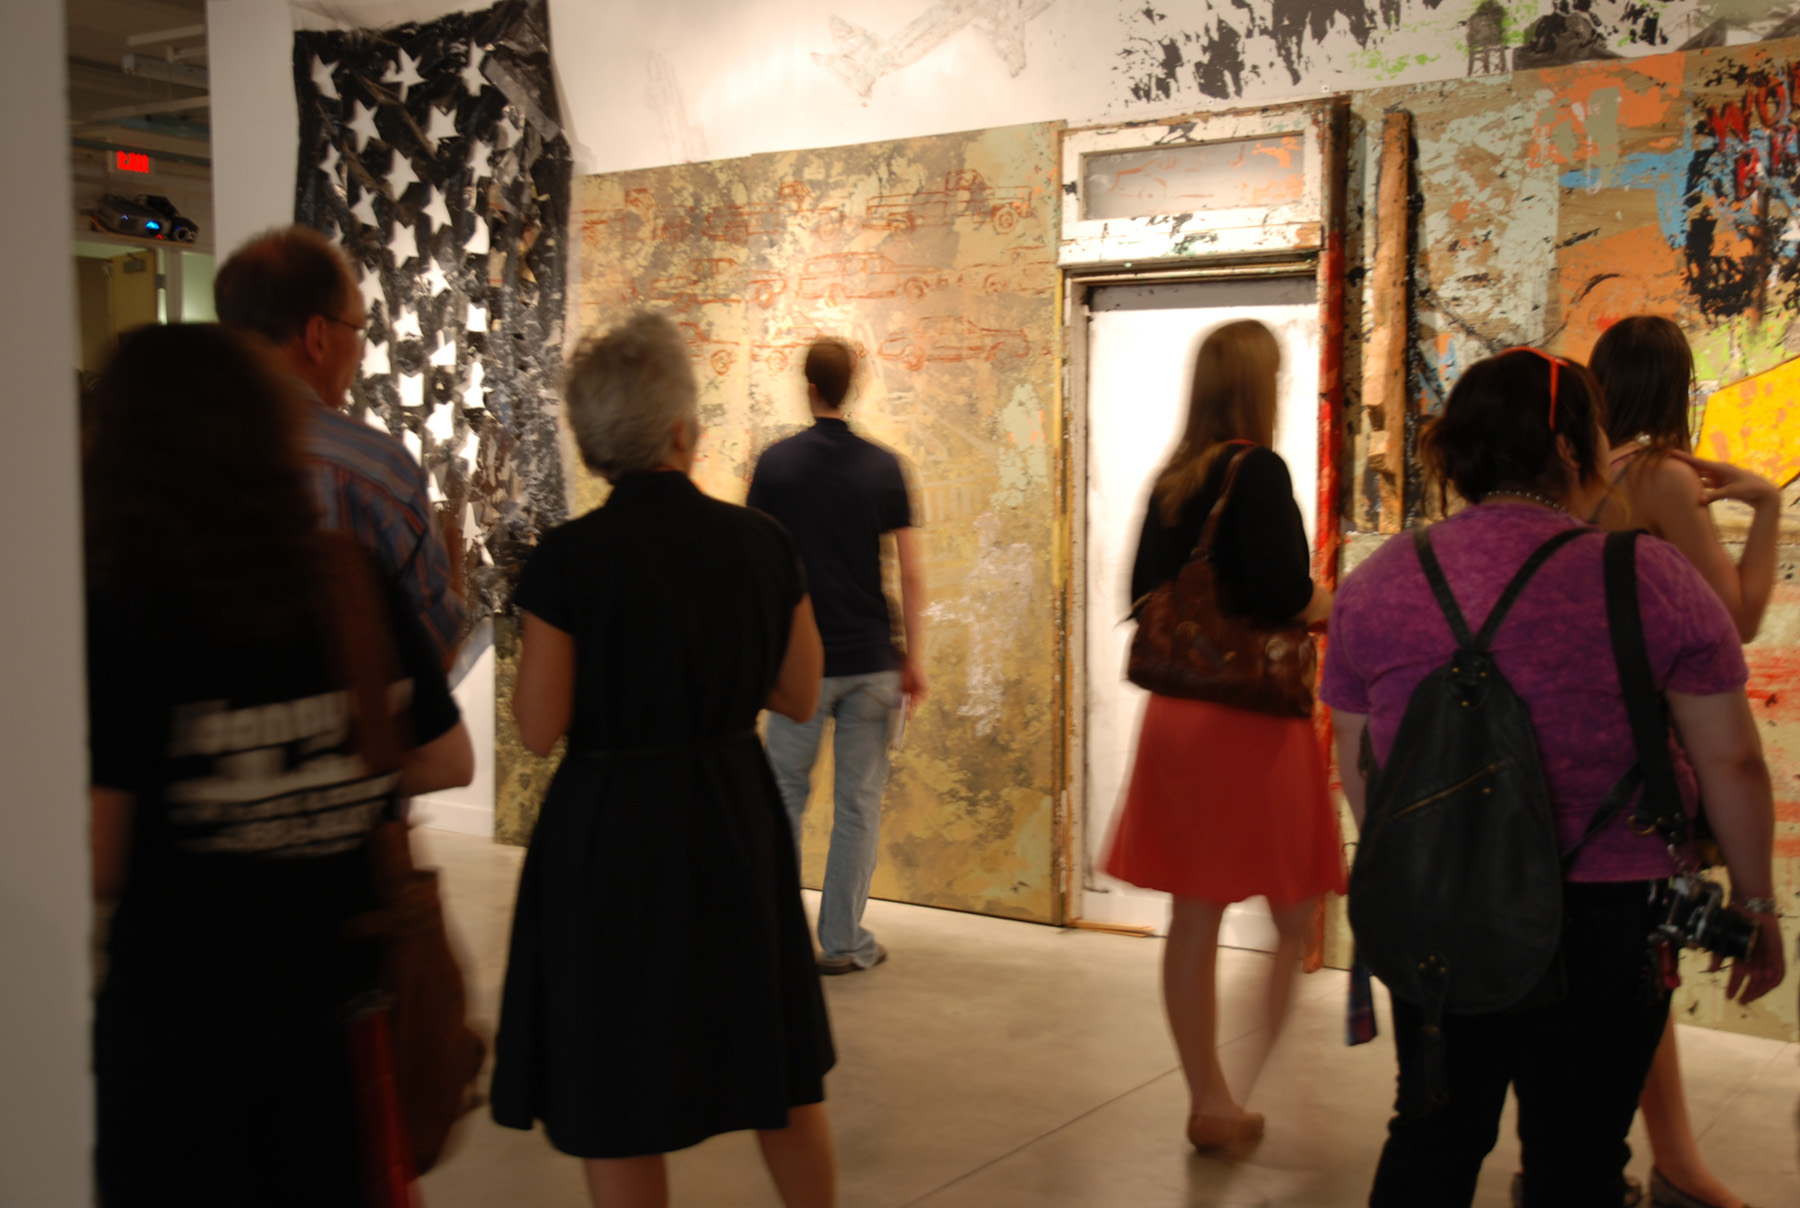 People touring art gallery